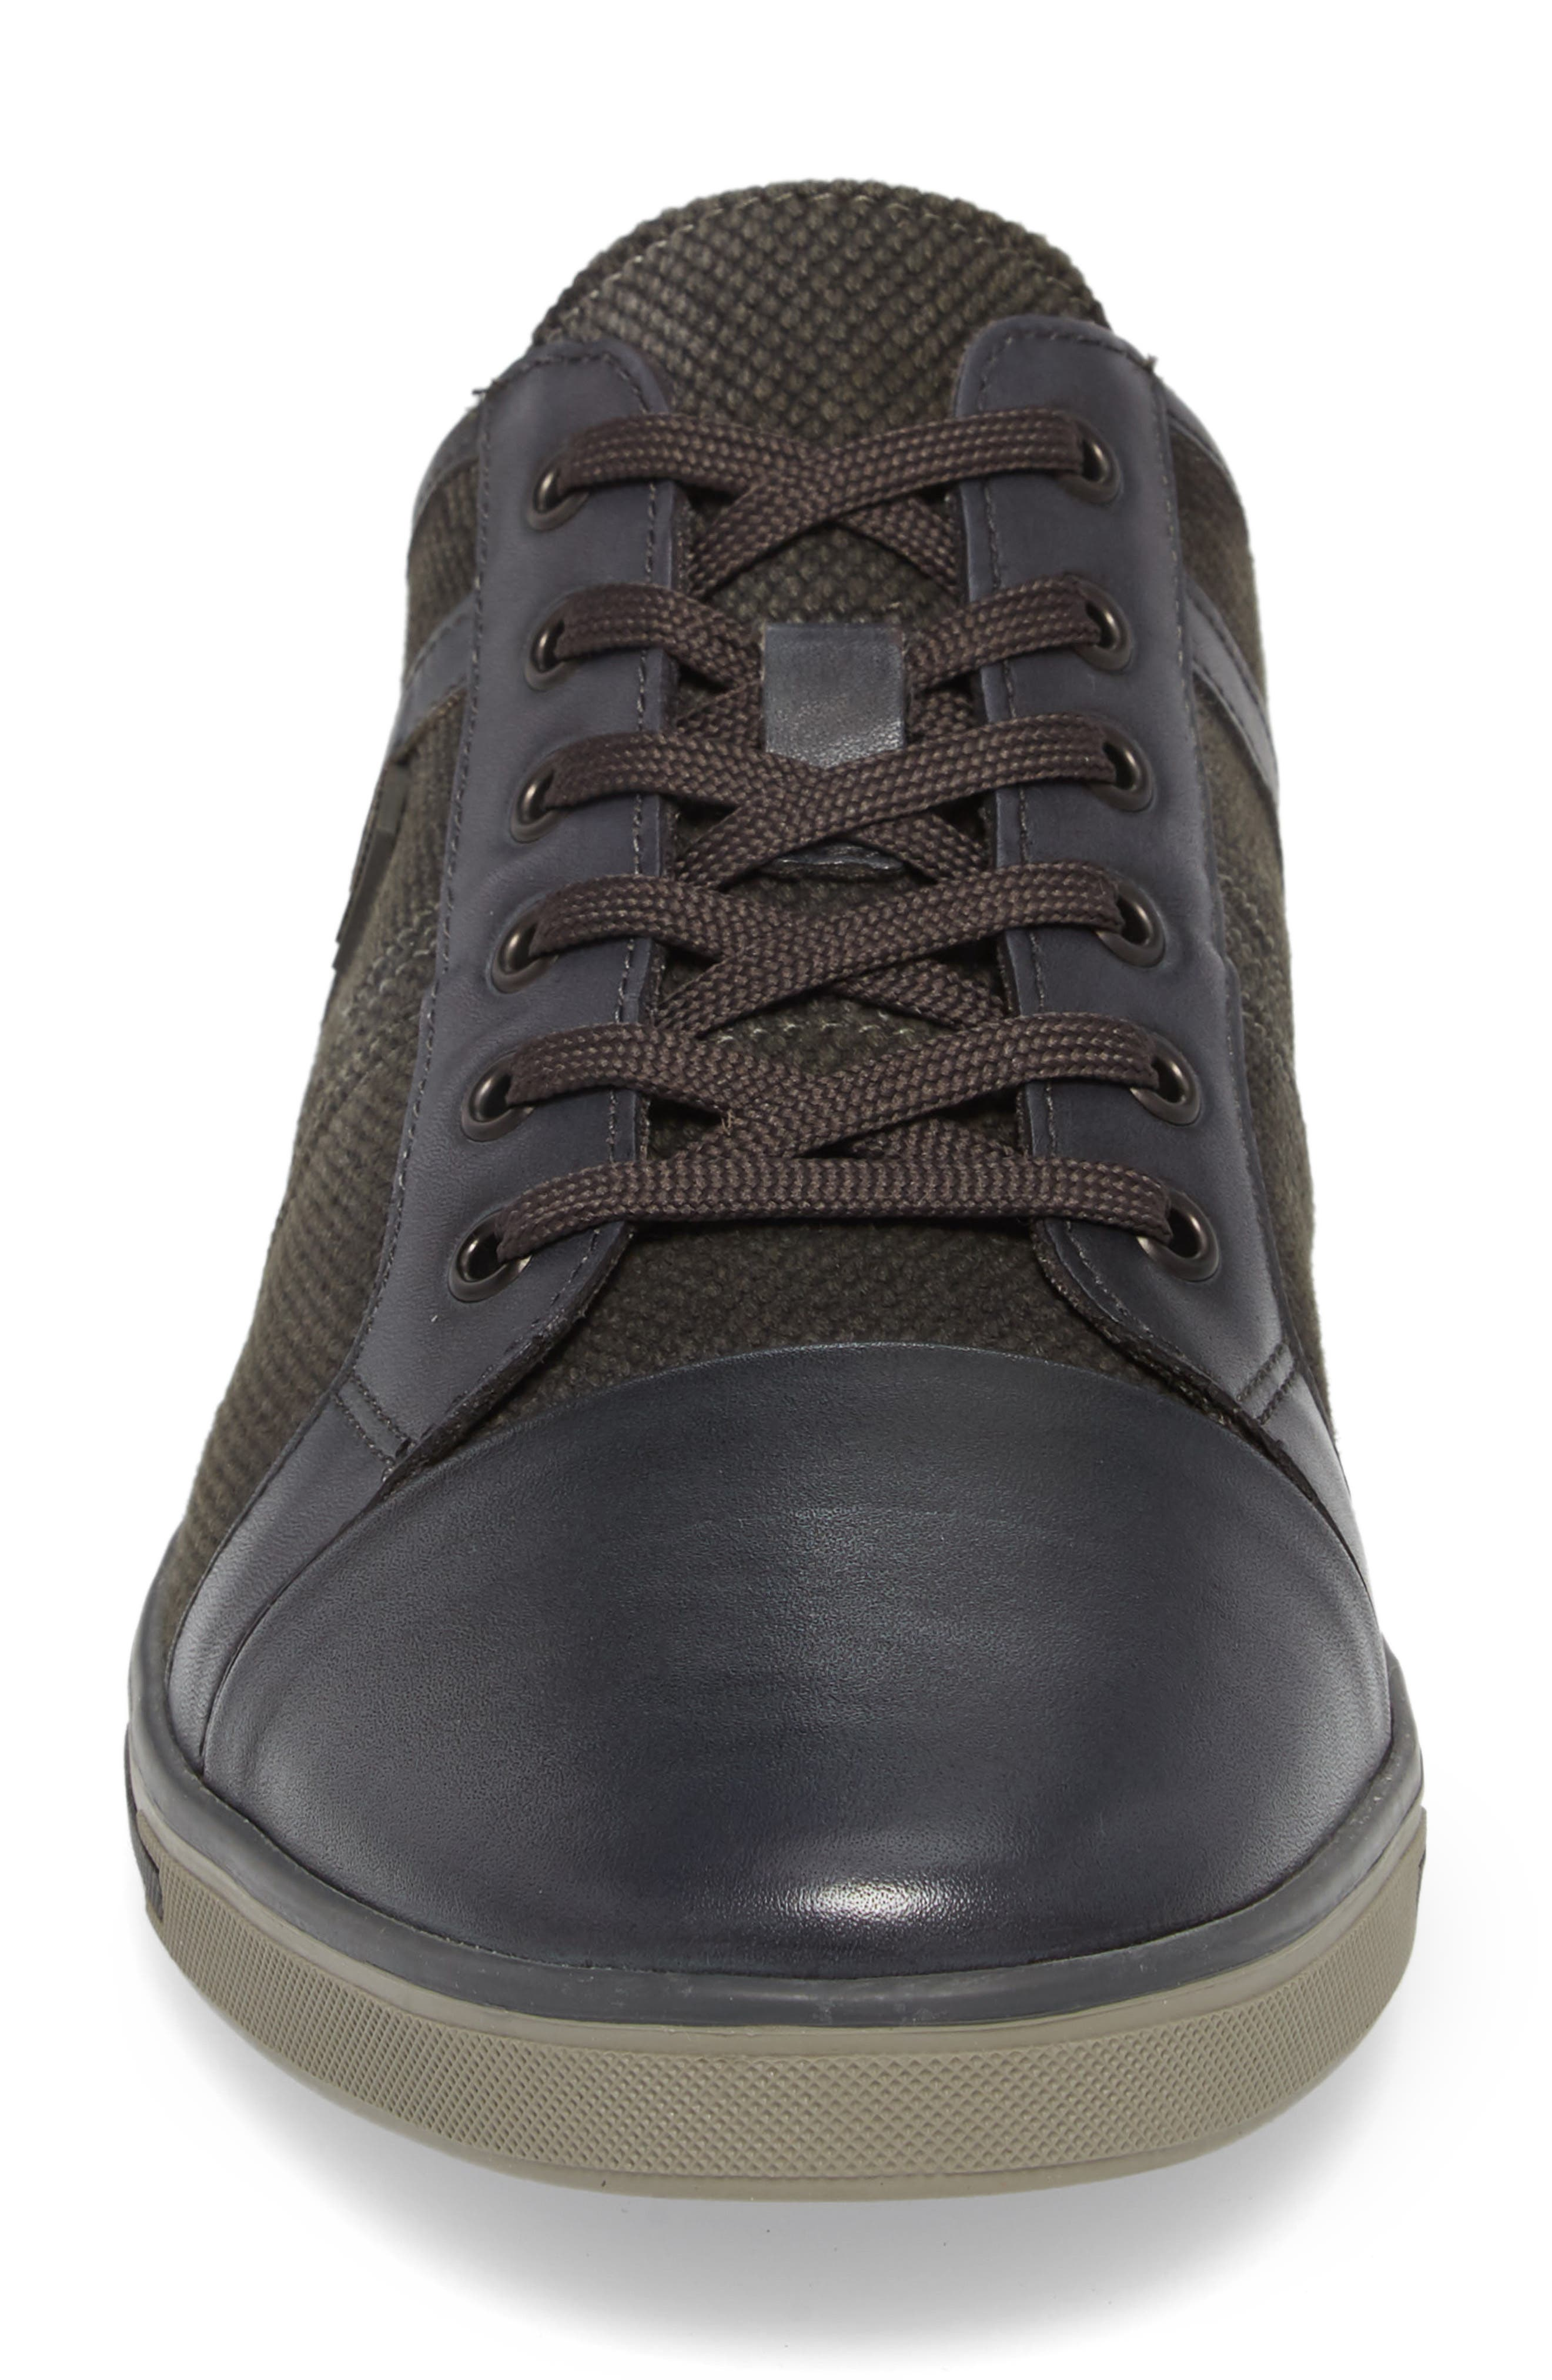 Initial Step Sneaker,                             Alternate thumbnail 4, color,                             Grey Leather/ Textile